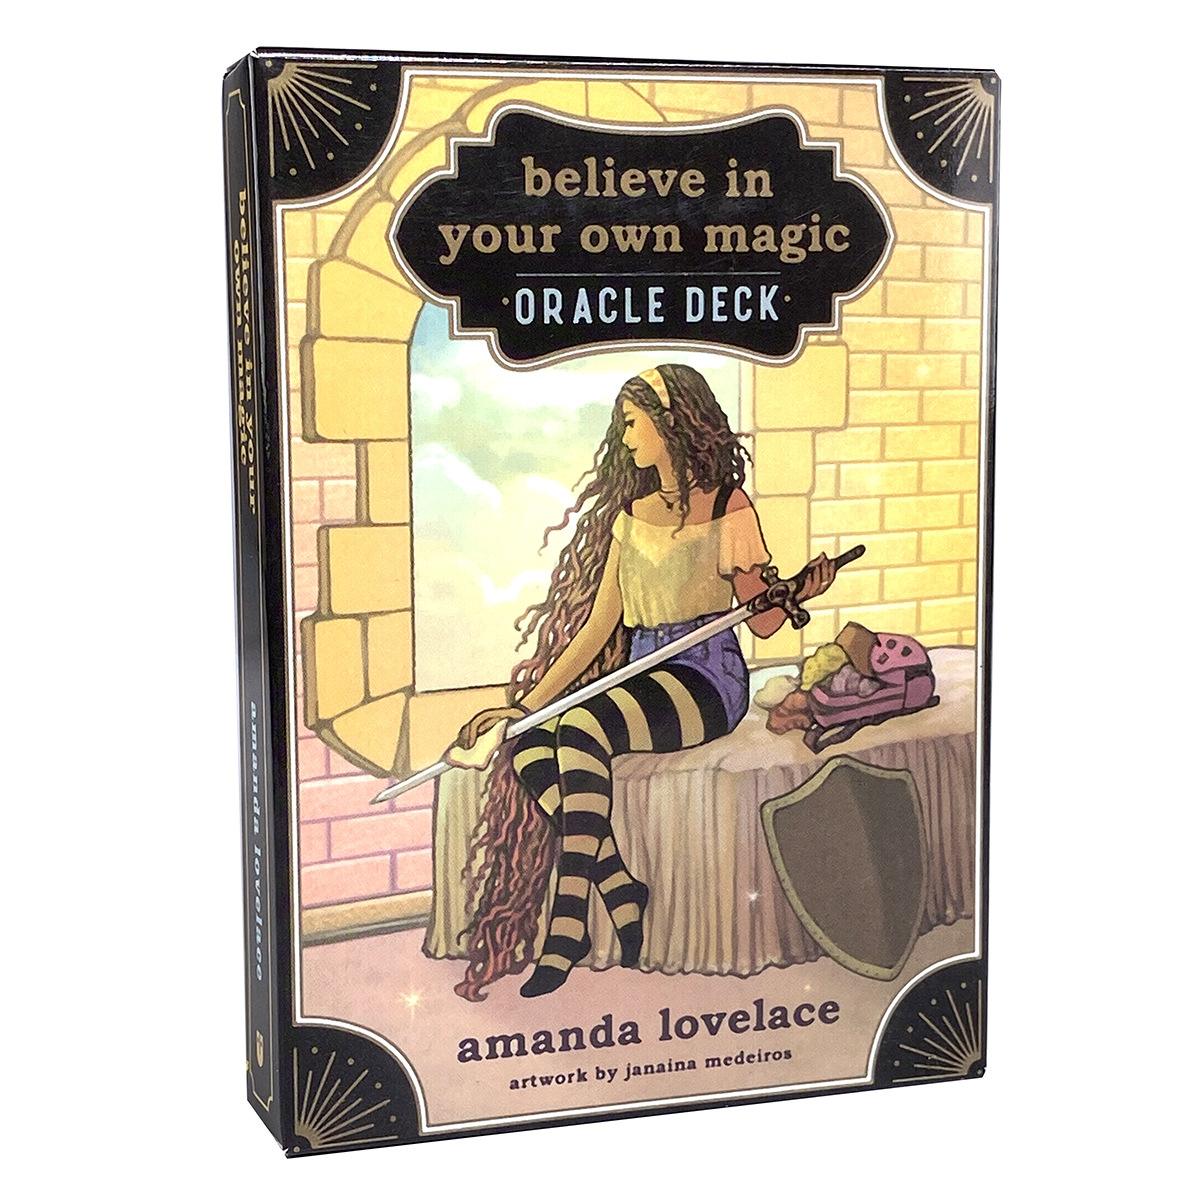 Believe in Your Own Magic Oracle Deck Tarot Card Board Game for Adult English Version Tarot Deck Playing Card Fate Divination